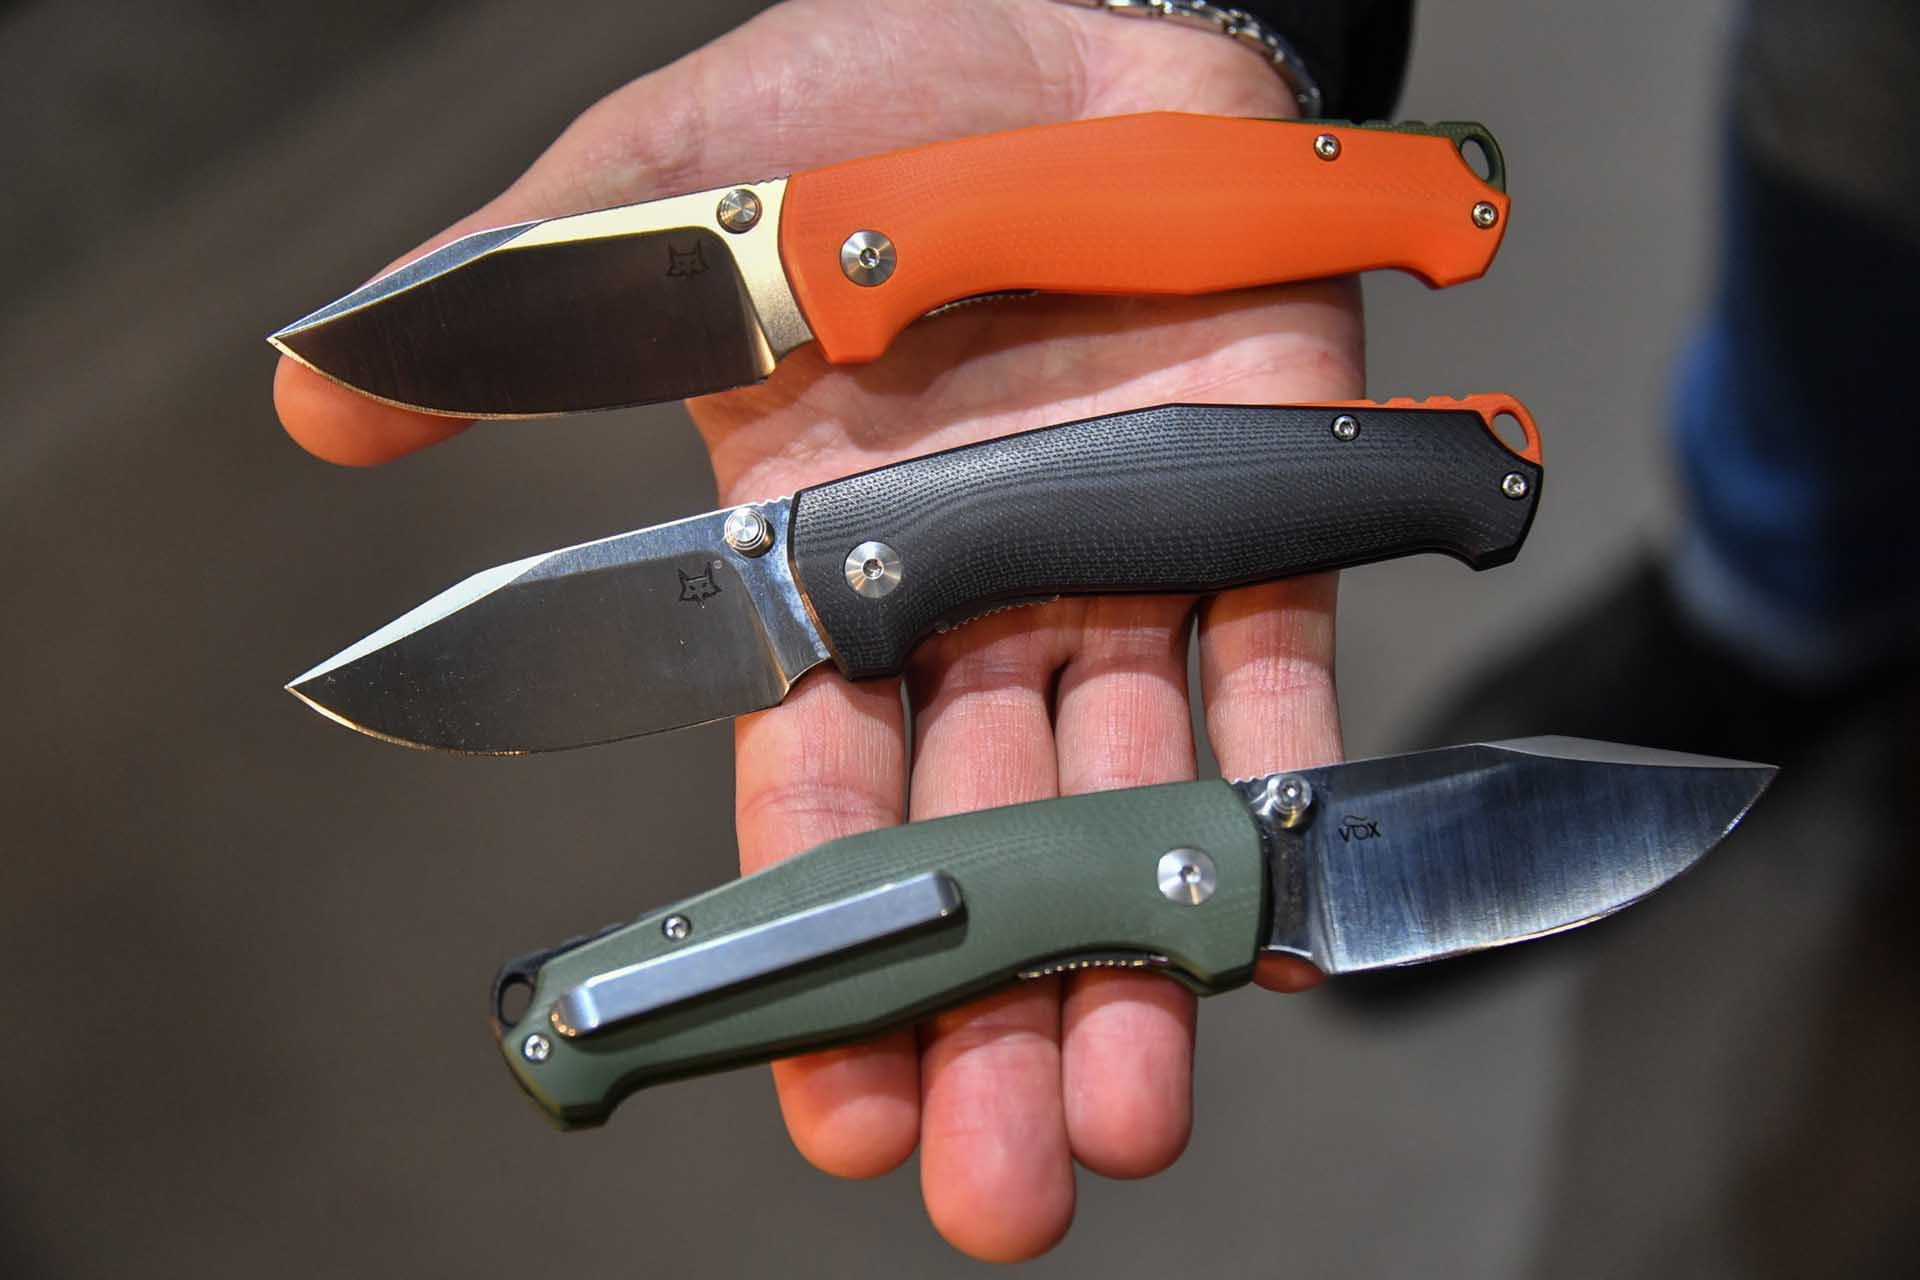 TUR folding knife  in different colors.